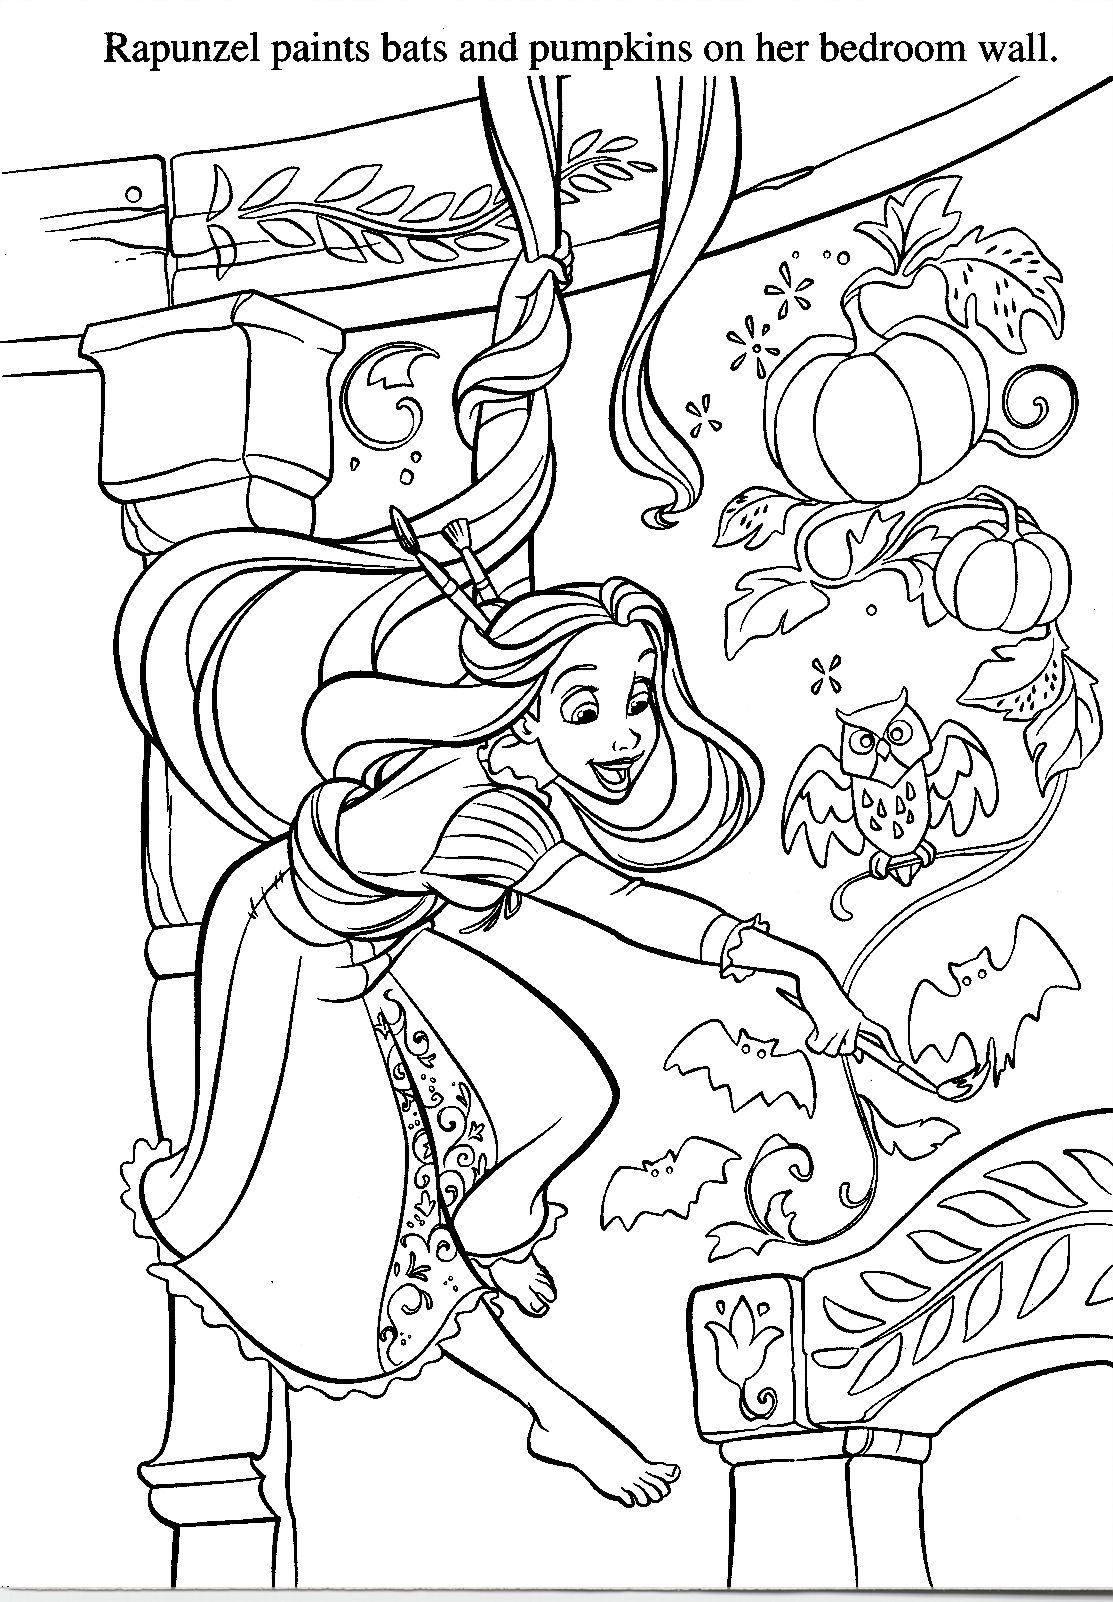 Halloween coloring with Rapunzel. | Ritmallar - barn | Pinterest ...